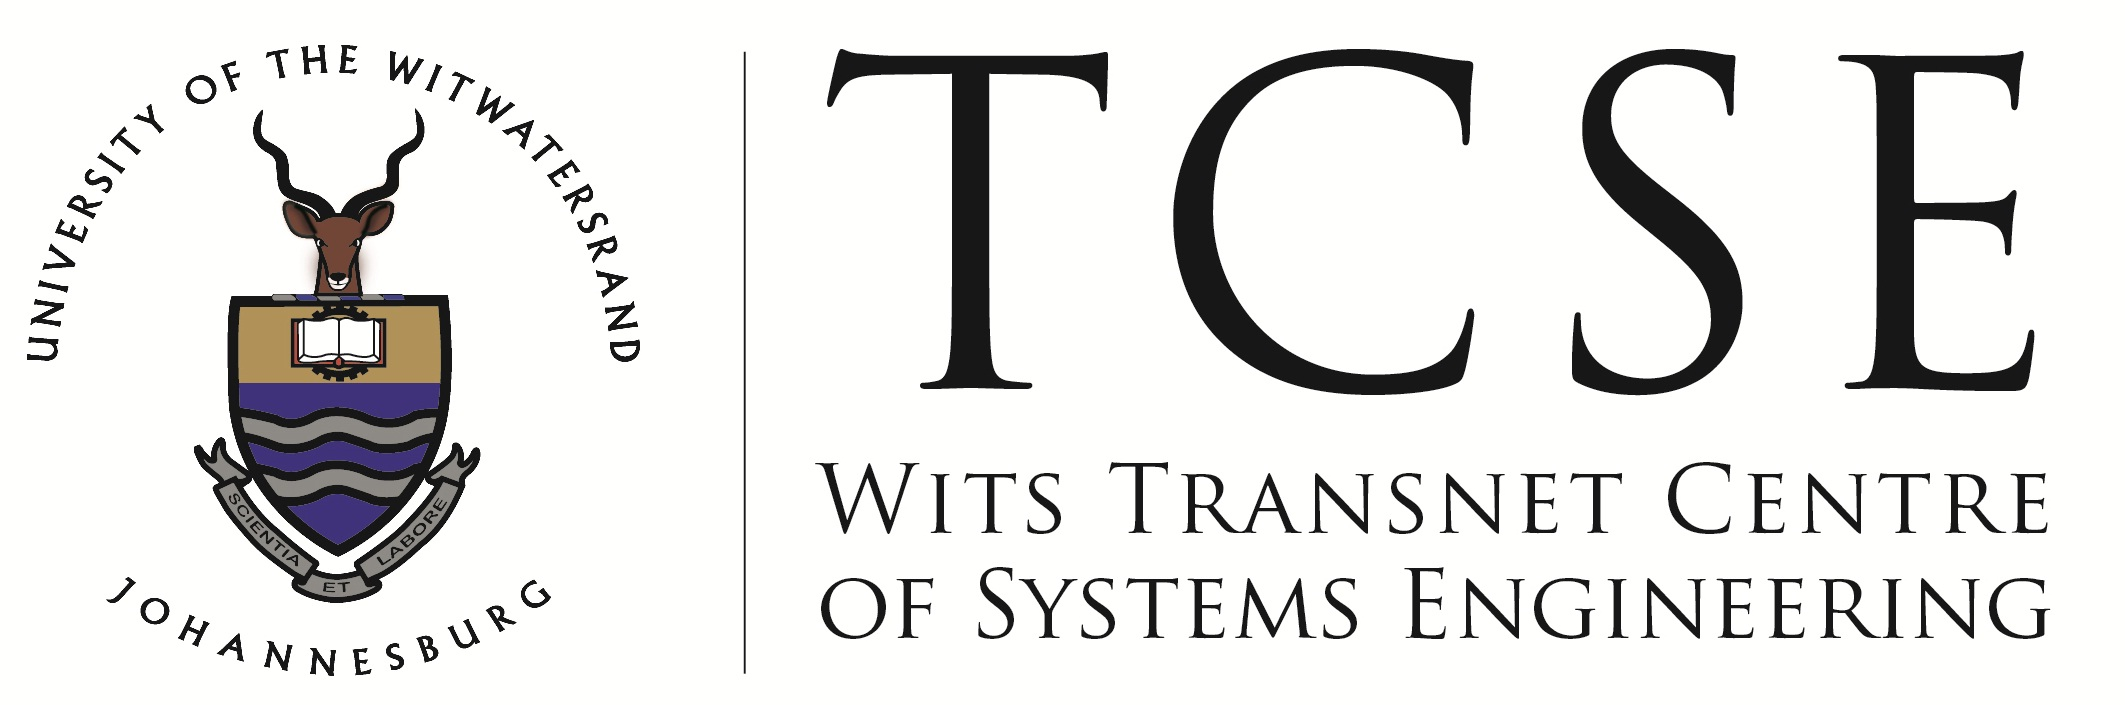 Logo of University of the Witwatersrand